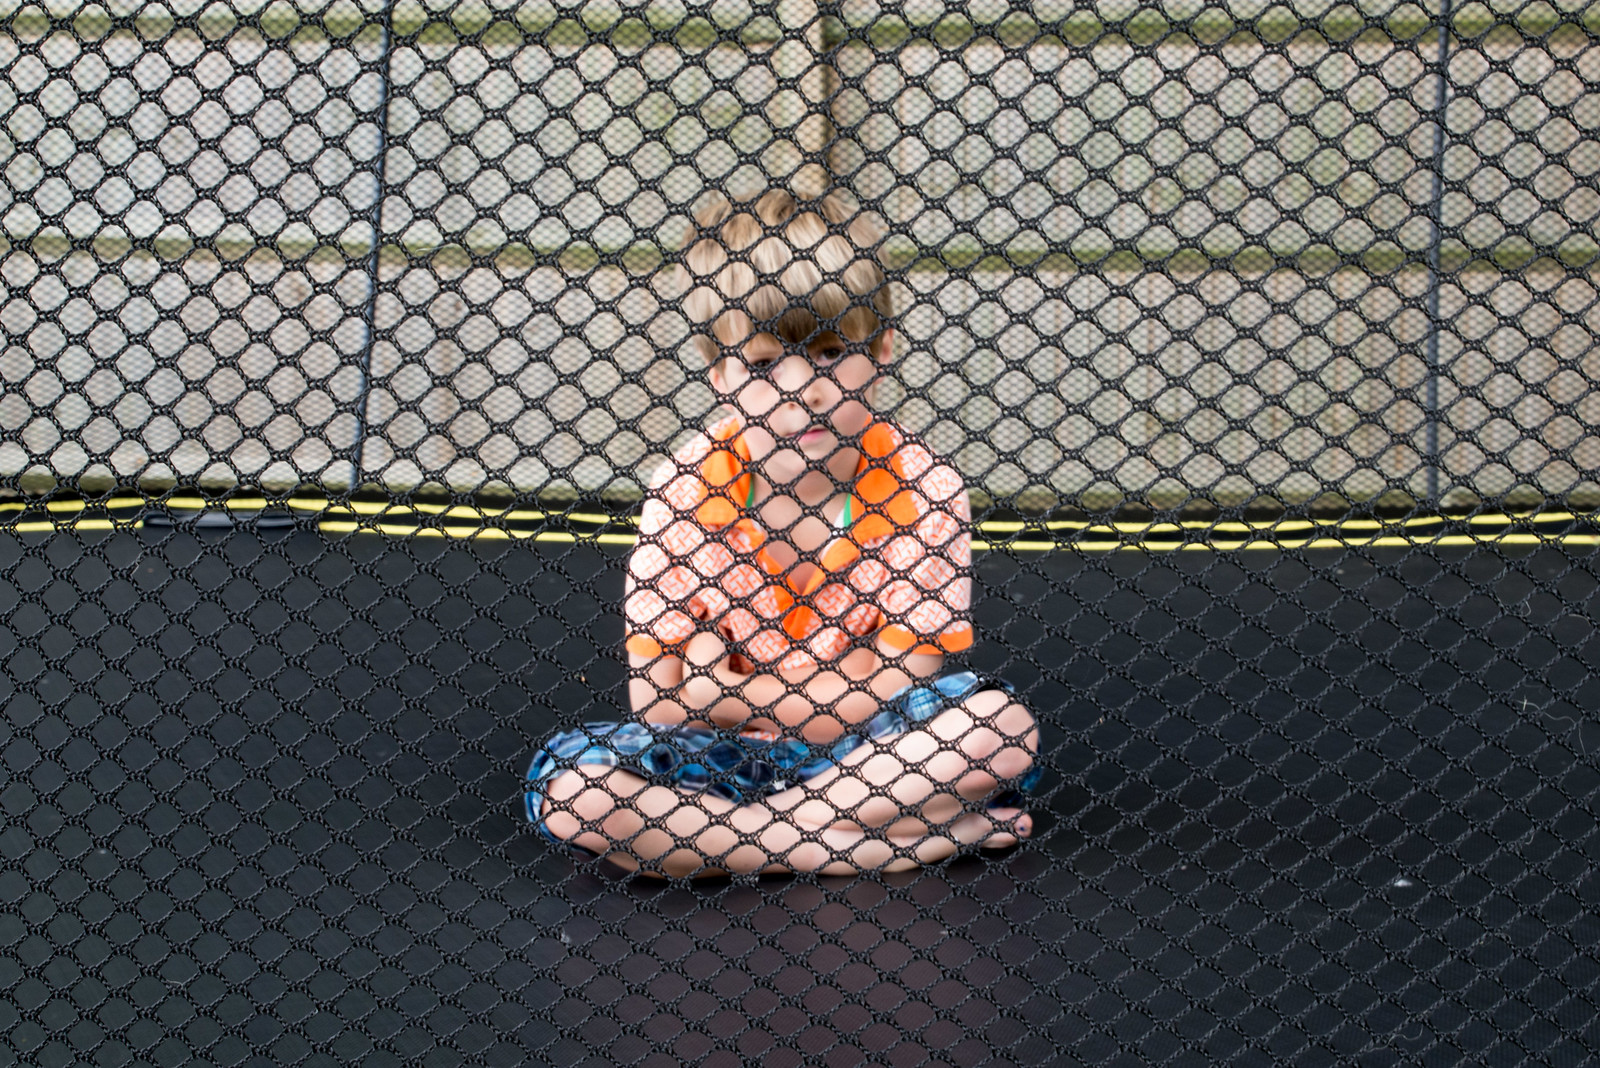 How to make a trampoline safety net vanish in photos